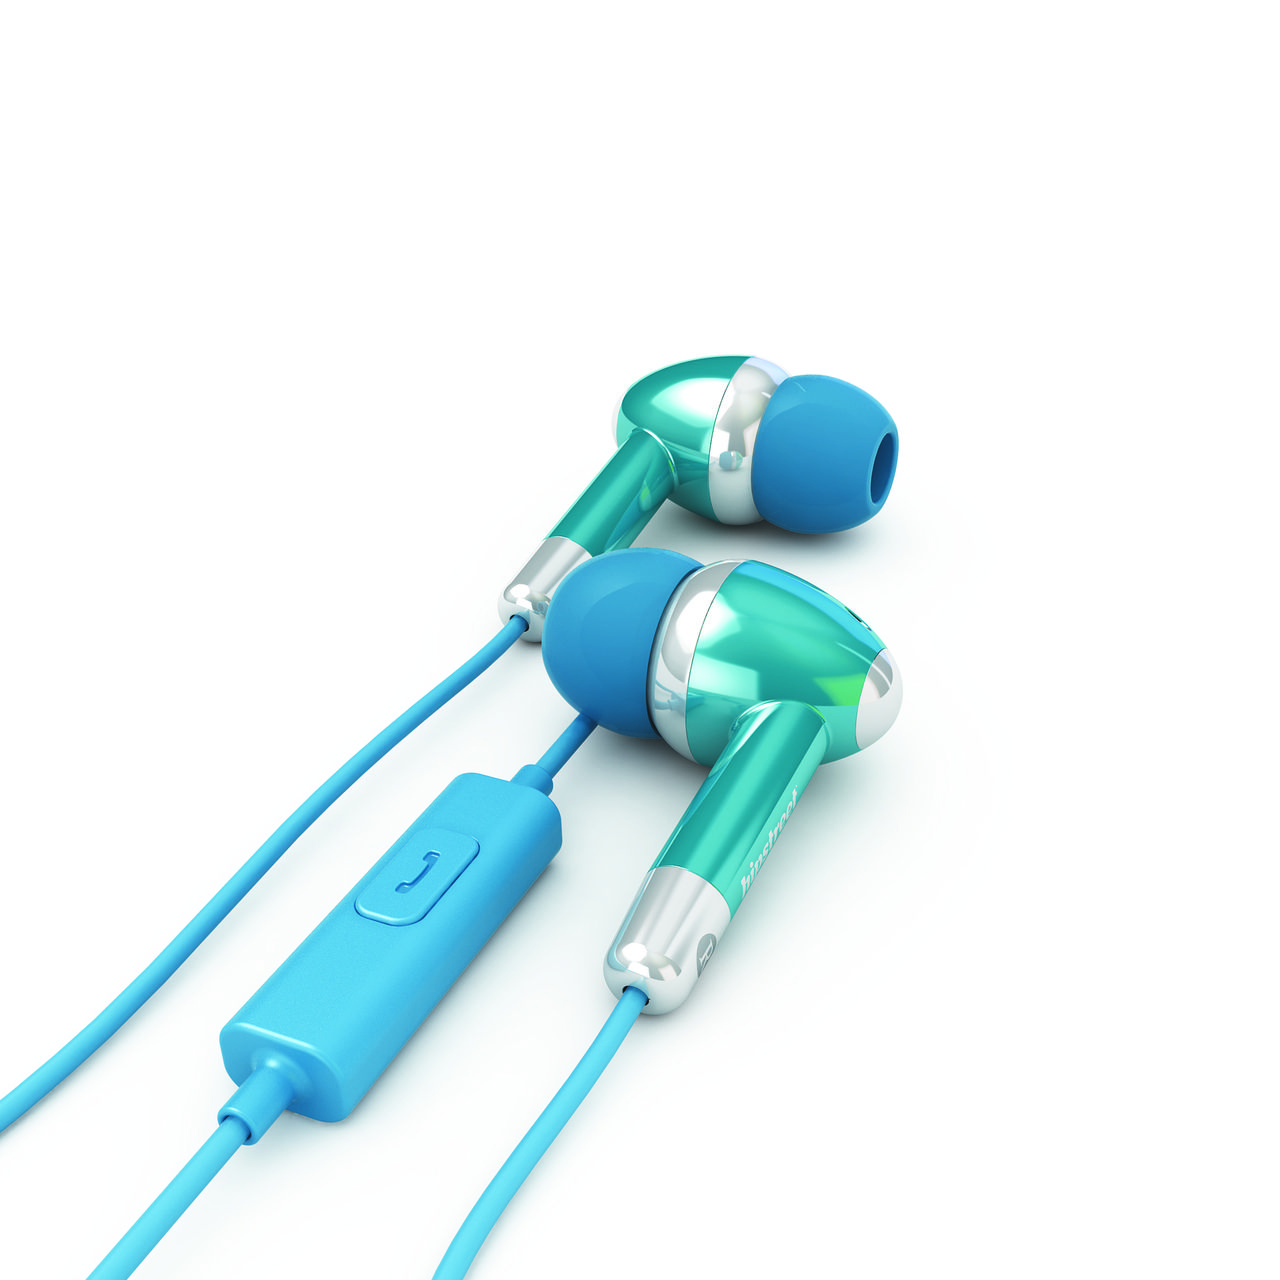 High Performance INEAR Noise Isolating Stereo Earbuds